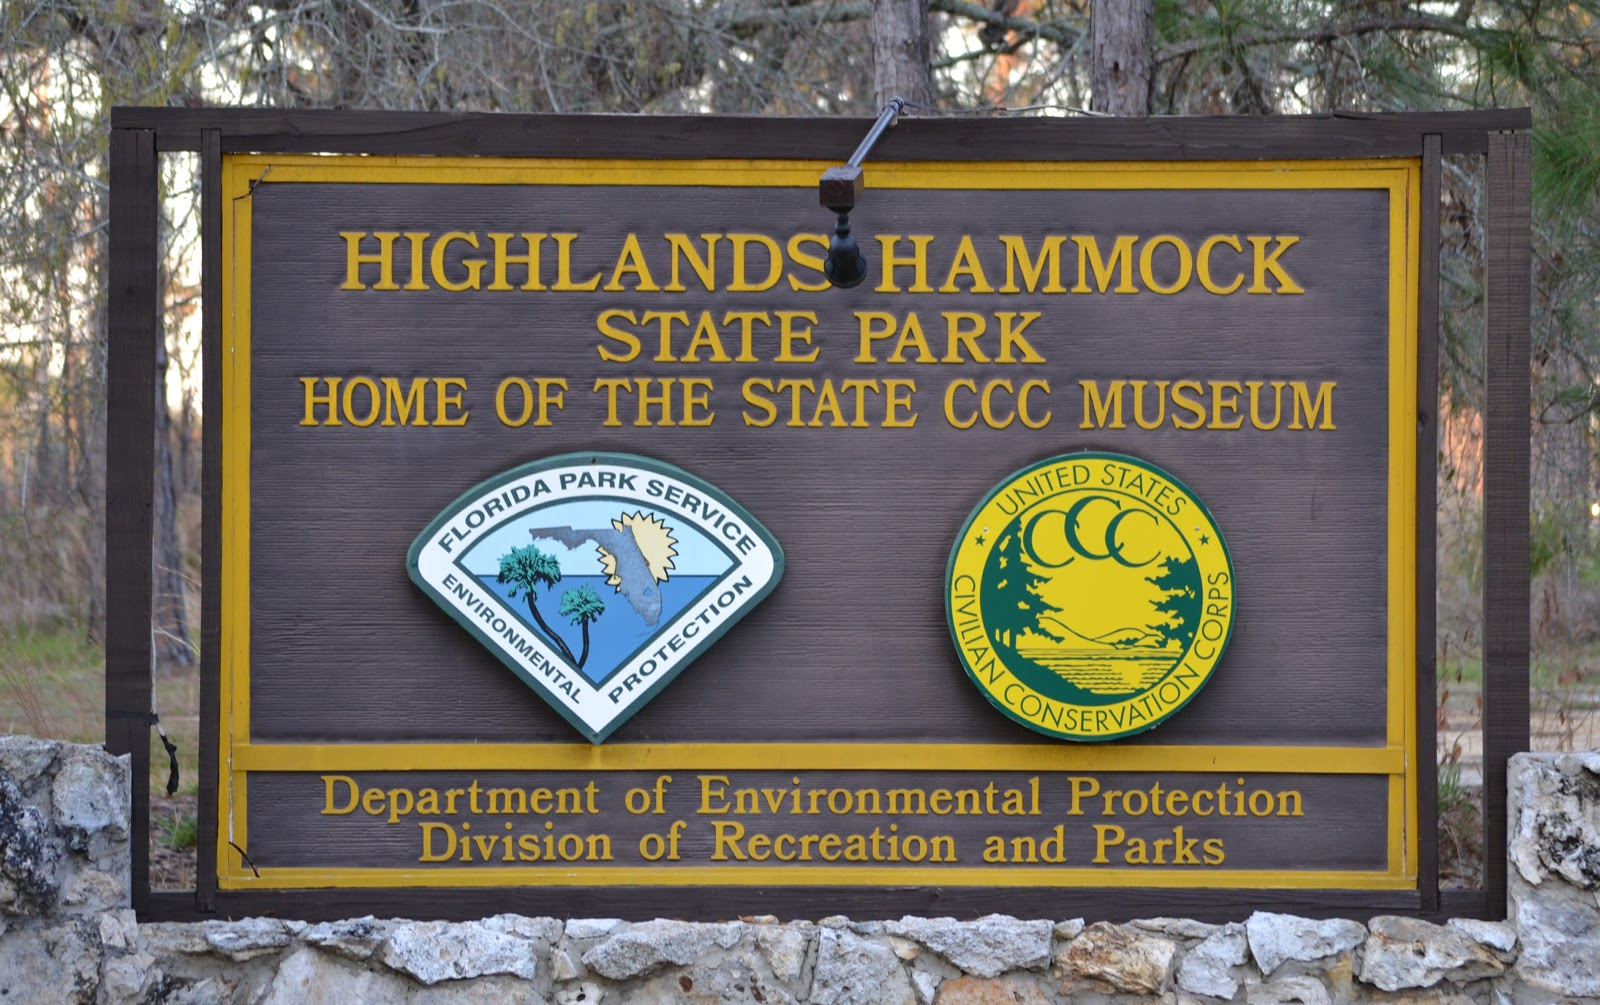 highlands hammock is one of the oldest state parks in florida  slated to be e a national park in 1930 but was considered to be too small a private group     no bad days rving  highlands hammock state park  rh   nobaddaysrving blogspot